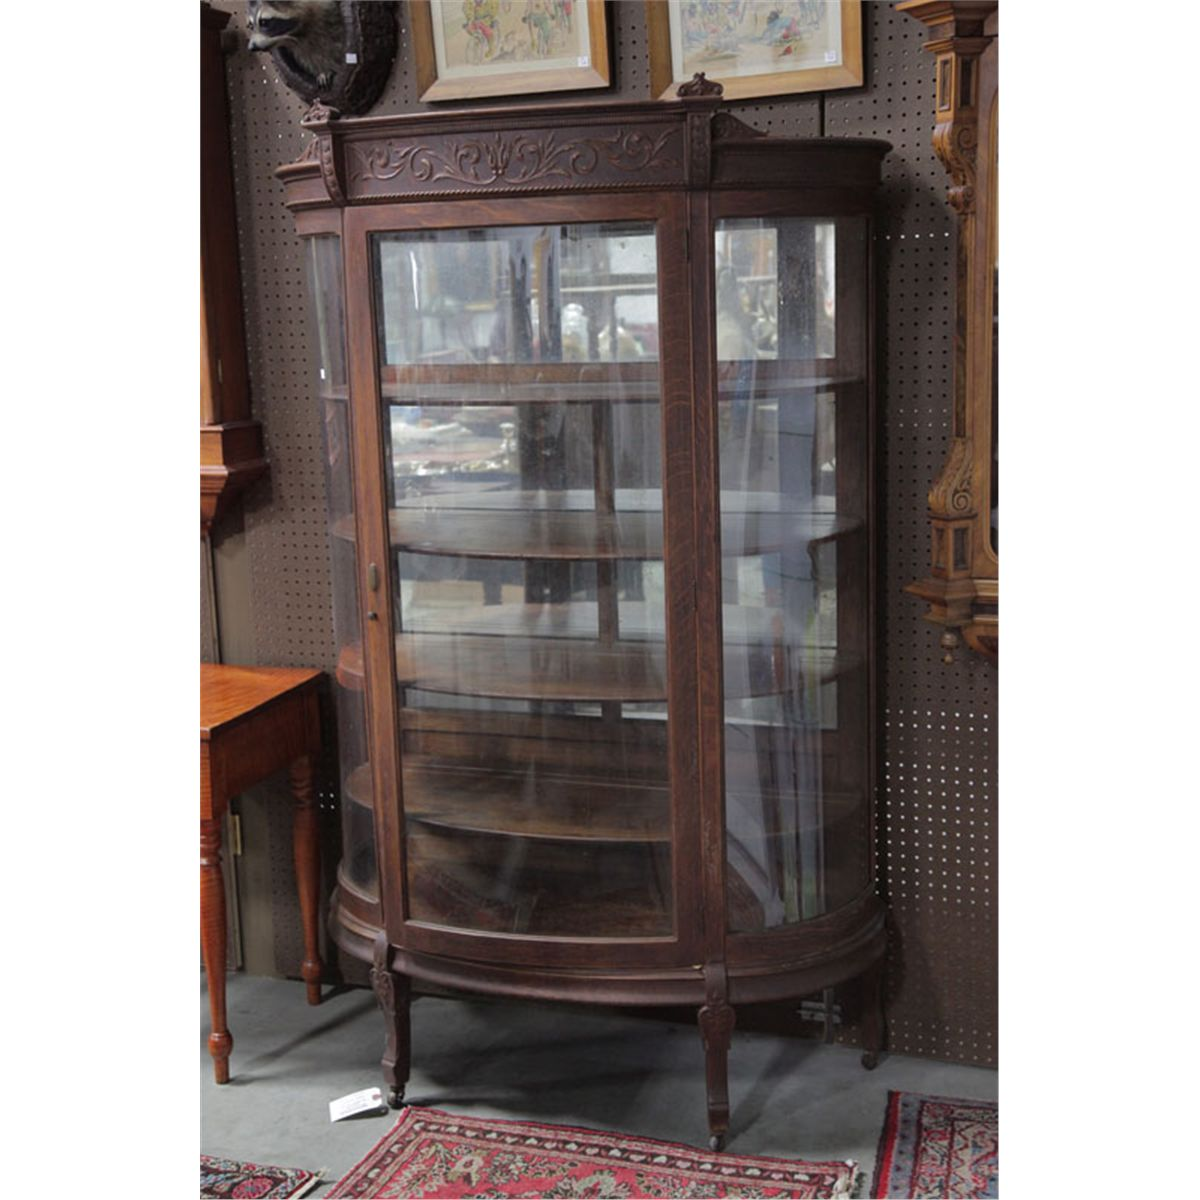 CHINA CABINET. Oak having a foliate carved crest, curved glass door and  sides and resting on shaped - CHINA CABINET. Oak Having A Foliate Carved Crest, Curved Glass